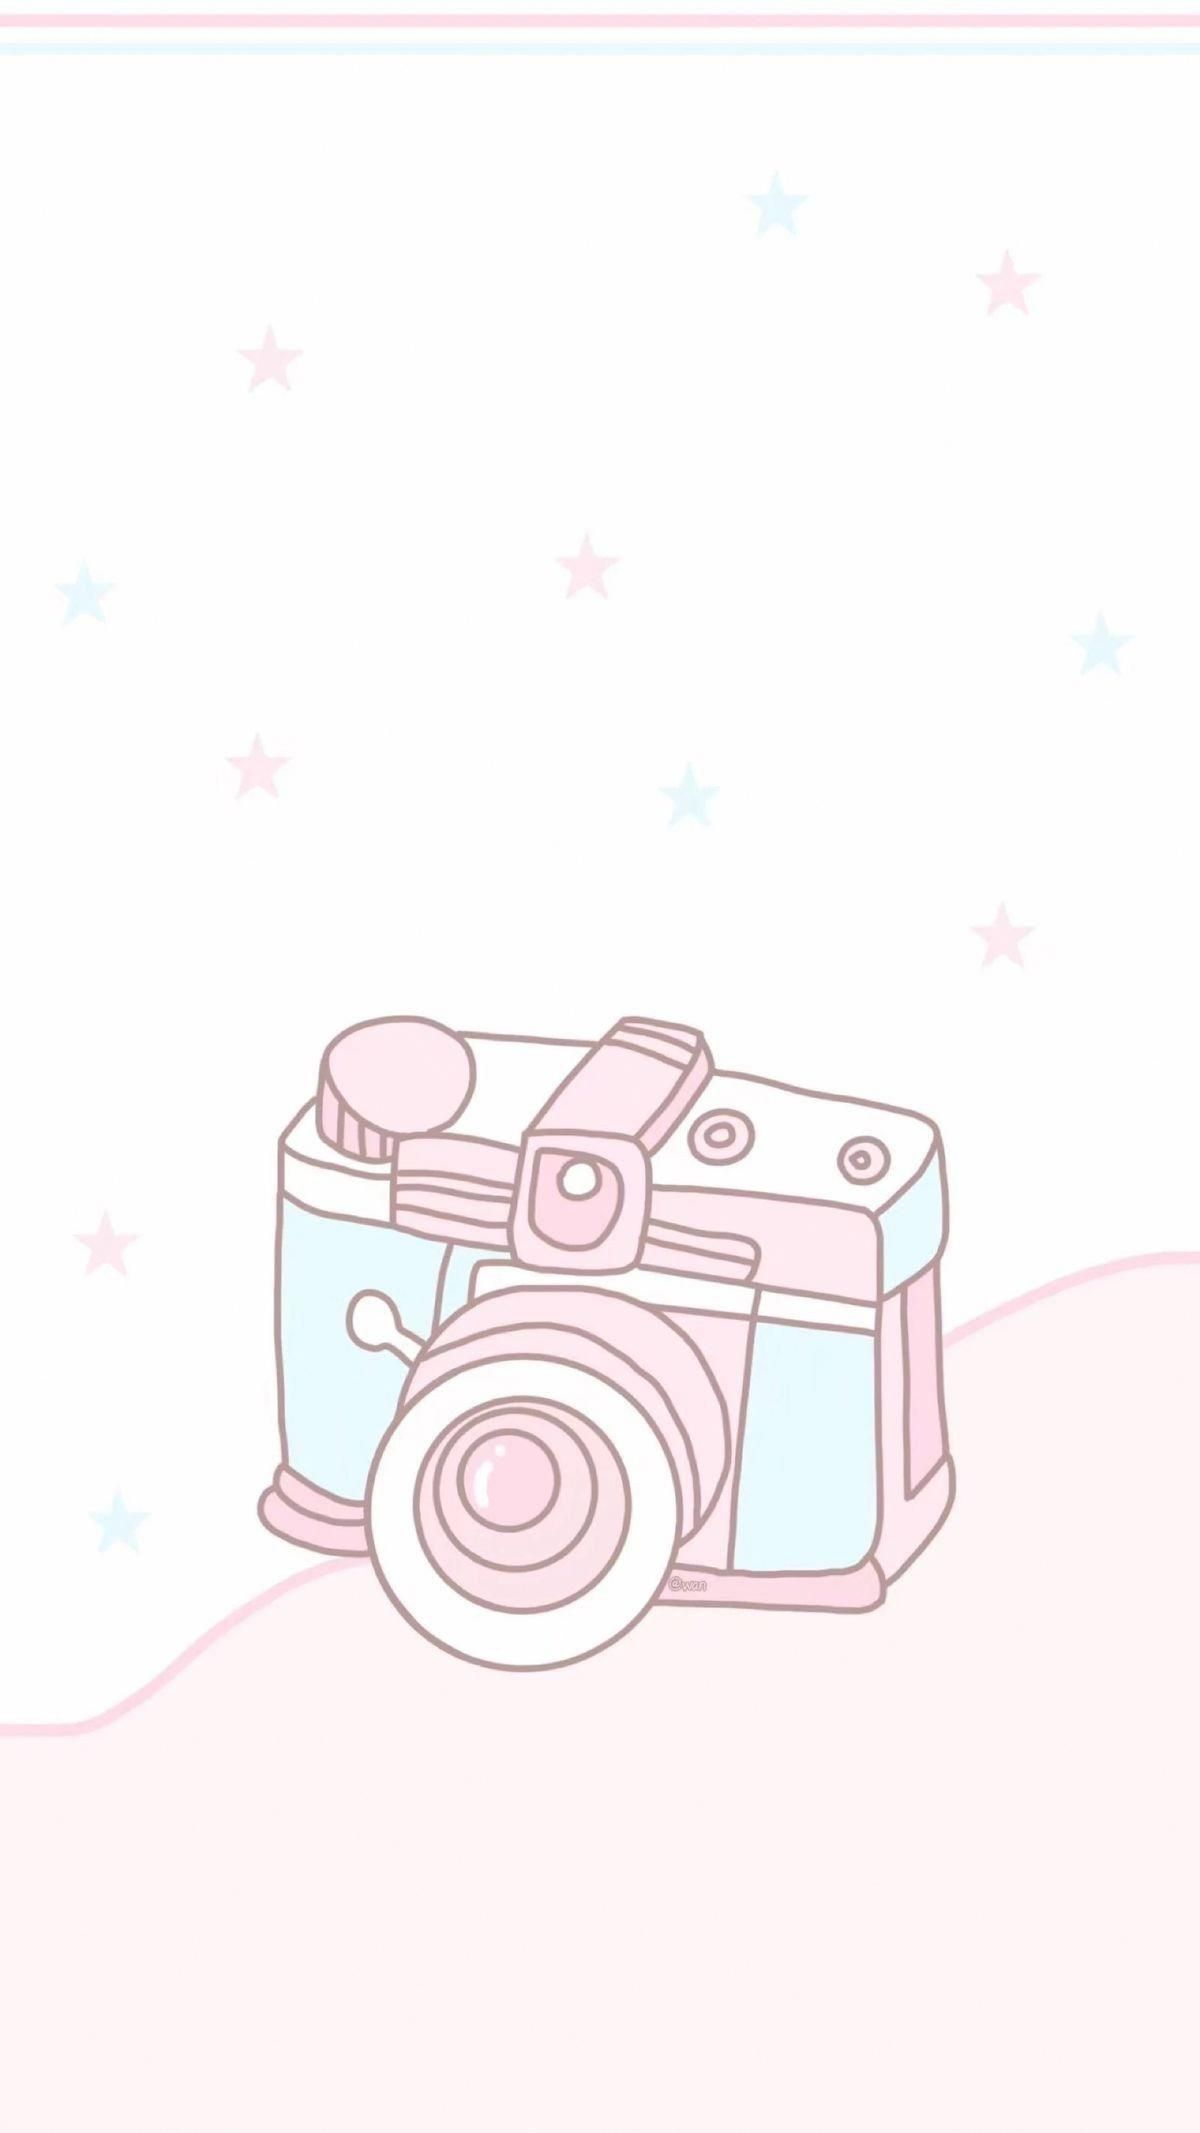 The Pastel Pastel Aesthetic Pink Aesthetic Kawaii Wallpaper Backgrounds Pastel Pink Drea Pastel Aesthetic Pastel Goth Background Kawaii Wallpaper